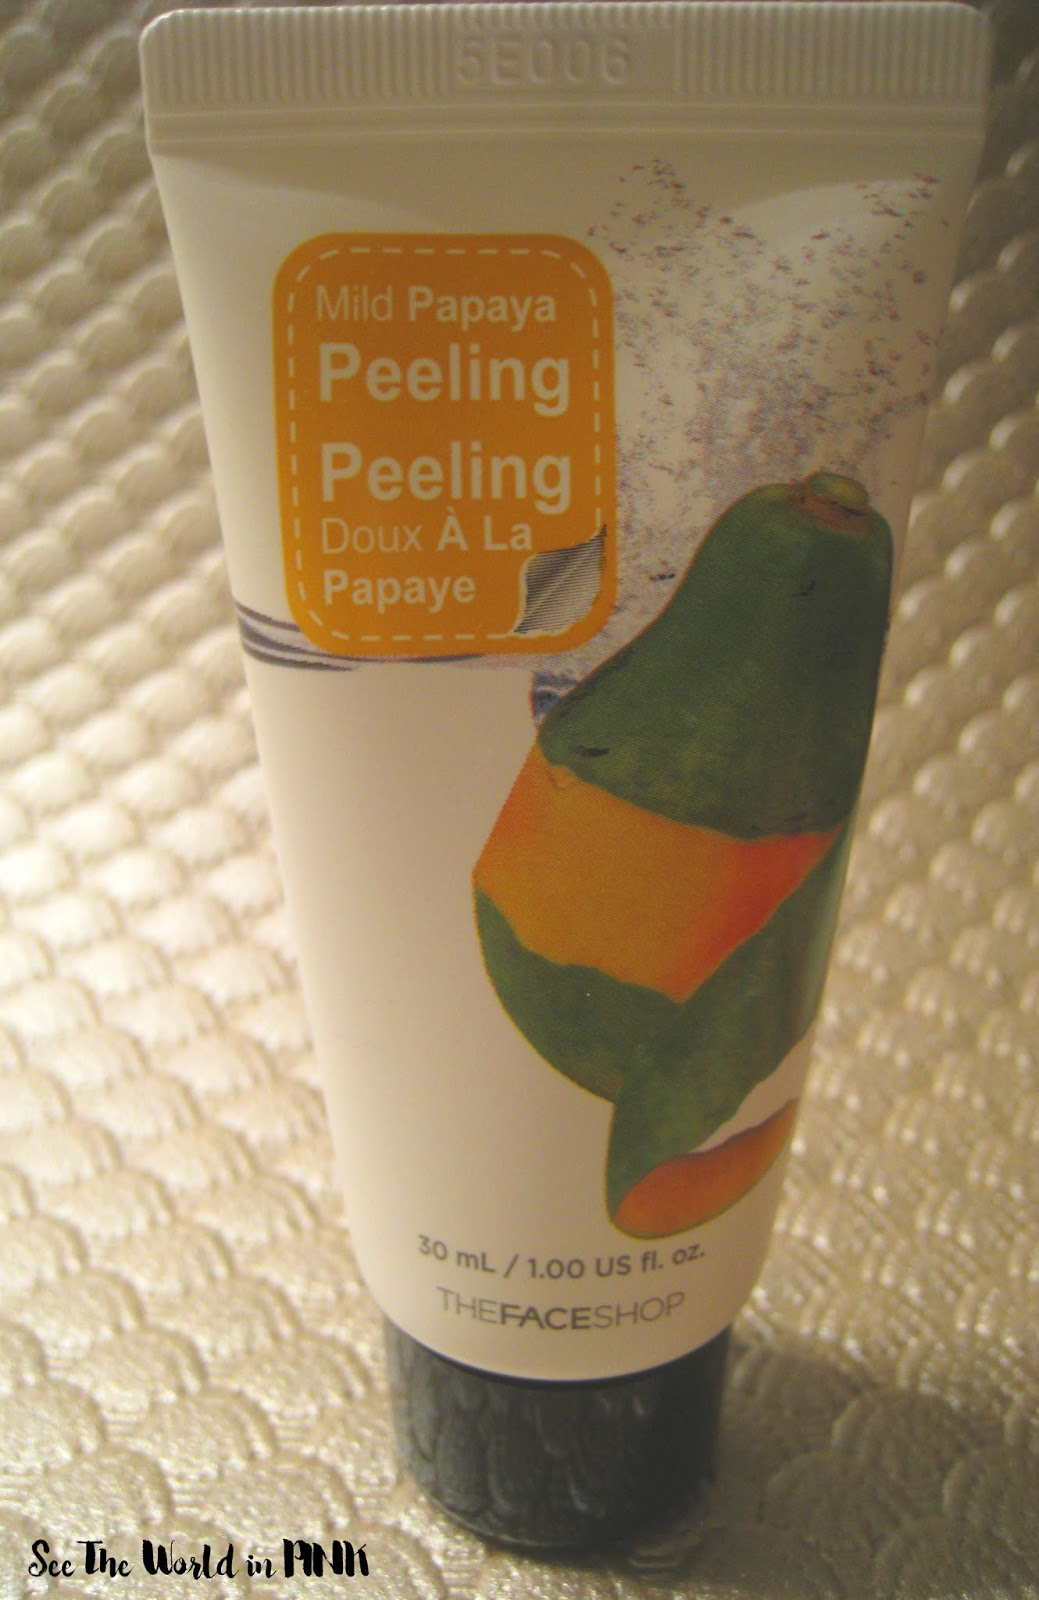 THEFACESHOP Mild Papaya Peeling Review